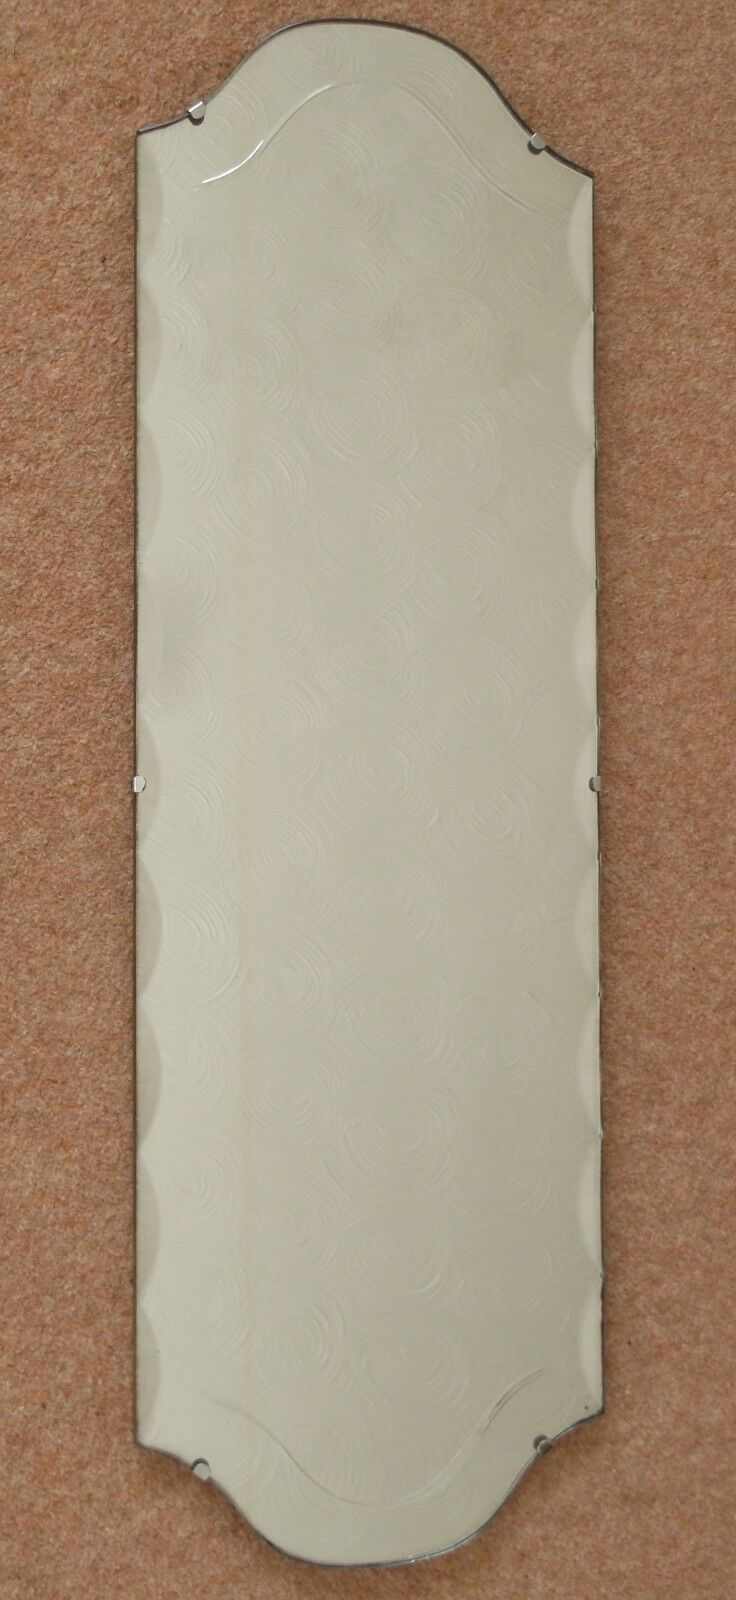 VINTAGE VERY LONG FRAMELESS WOOD BACKED BEVELLED EDGE ETCHED WALL MIRROR